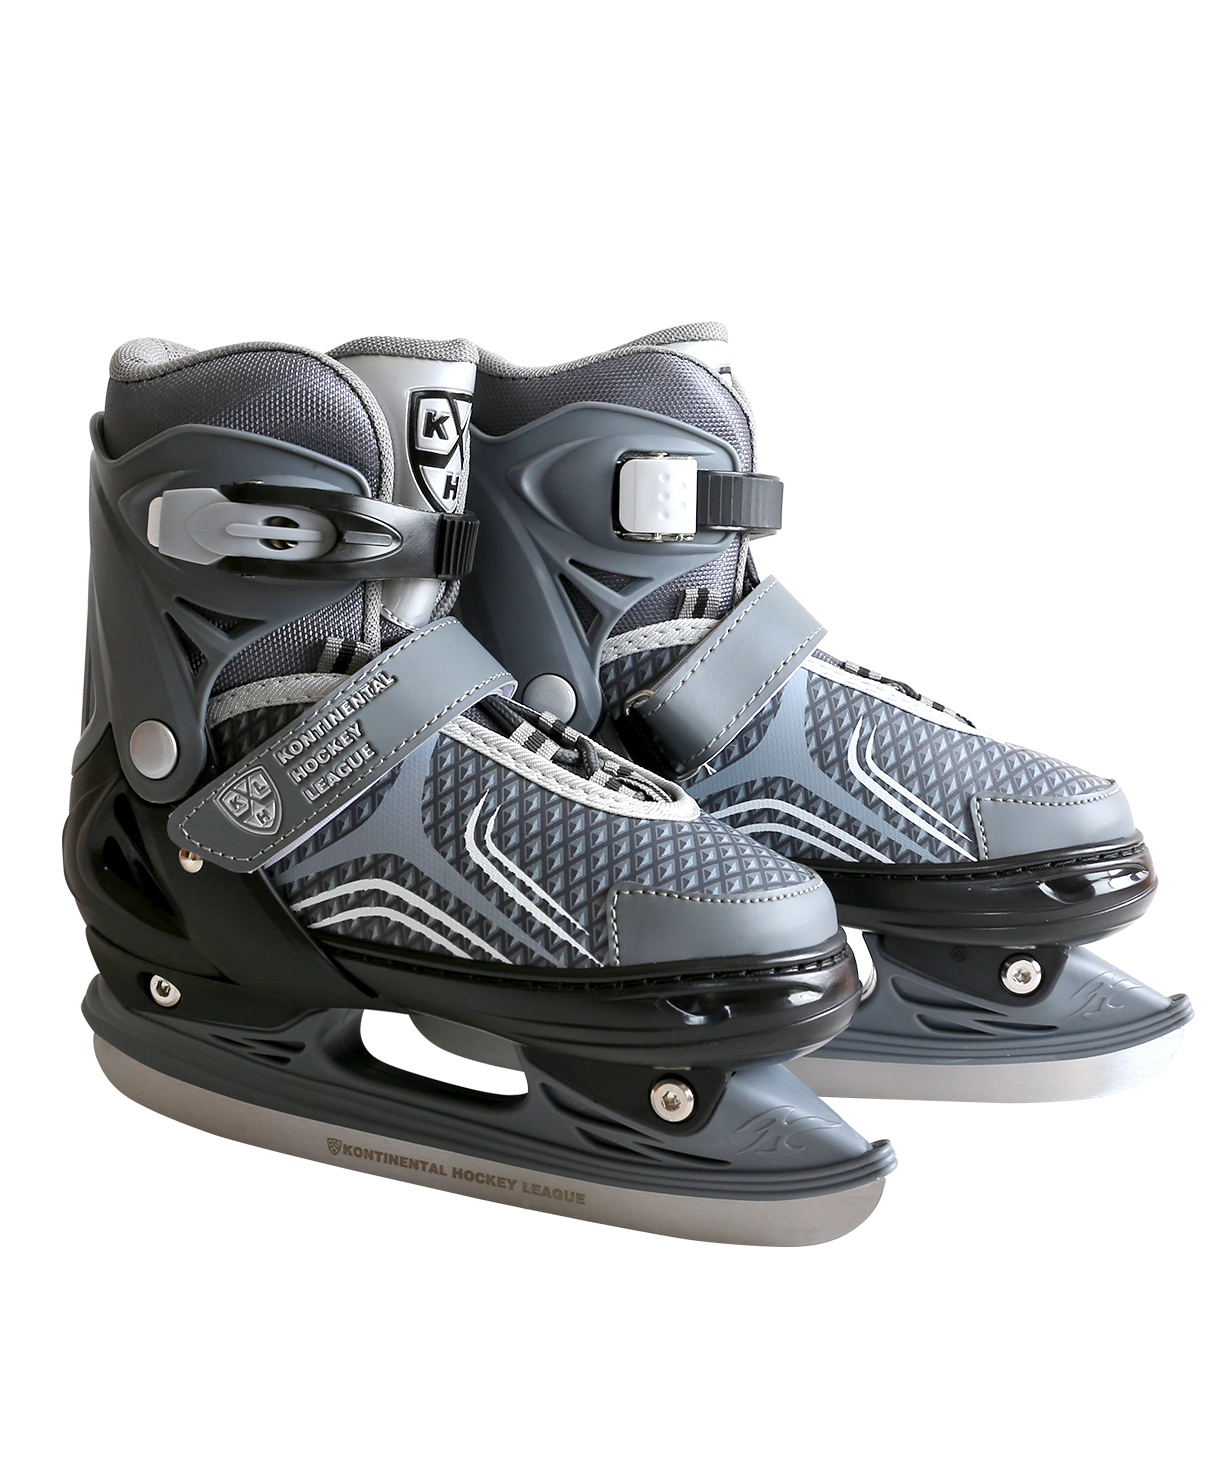 Ice Skates Png Image Ice Skating Skate Boots